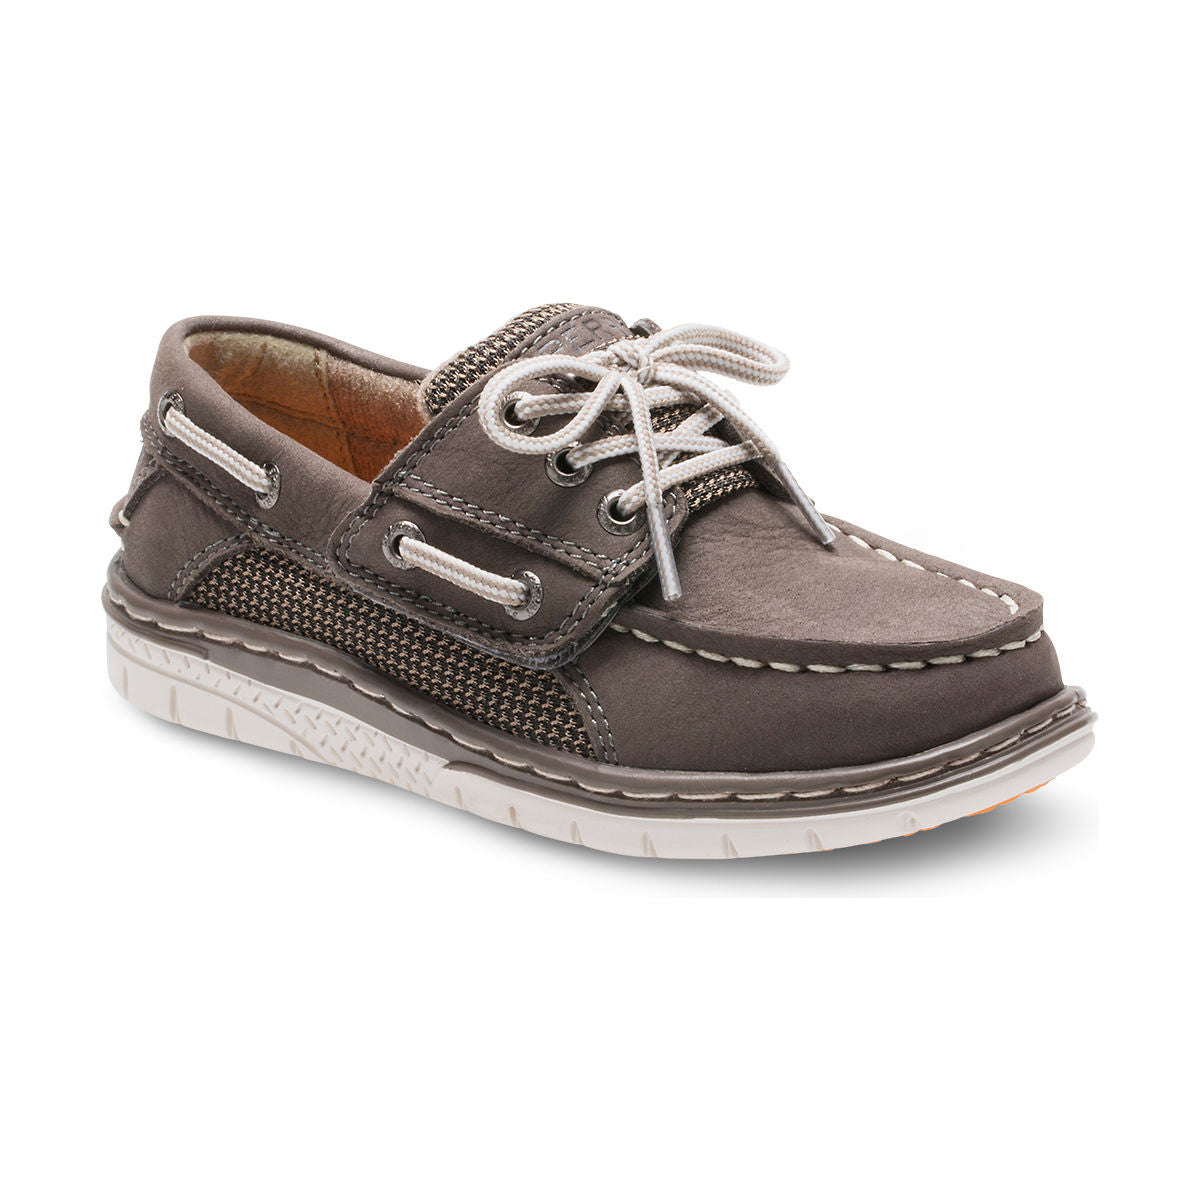 Sperry Children